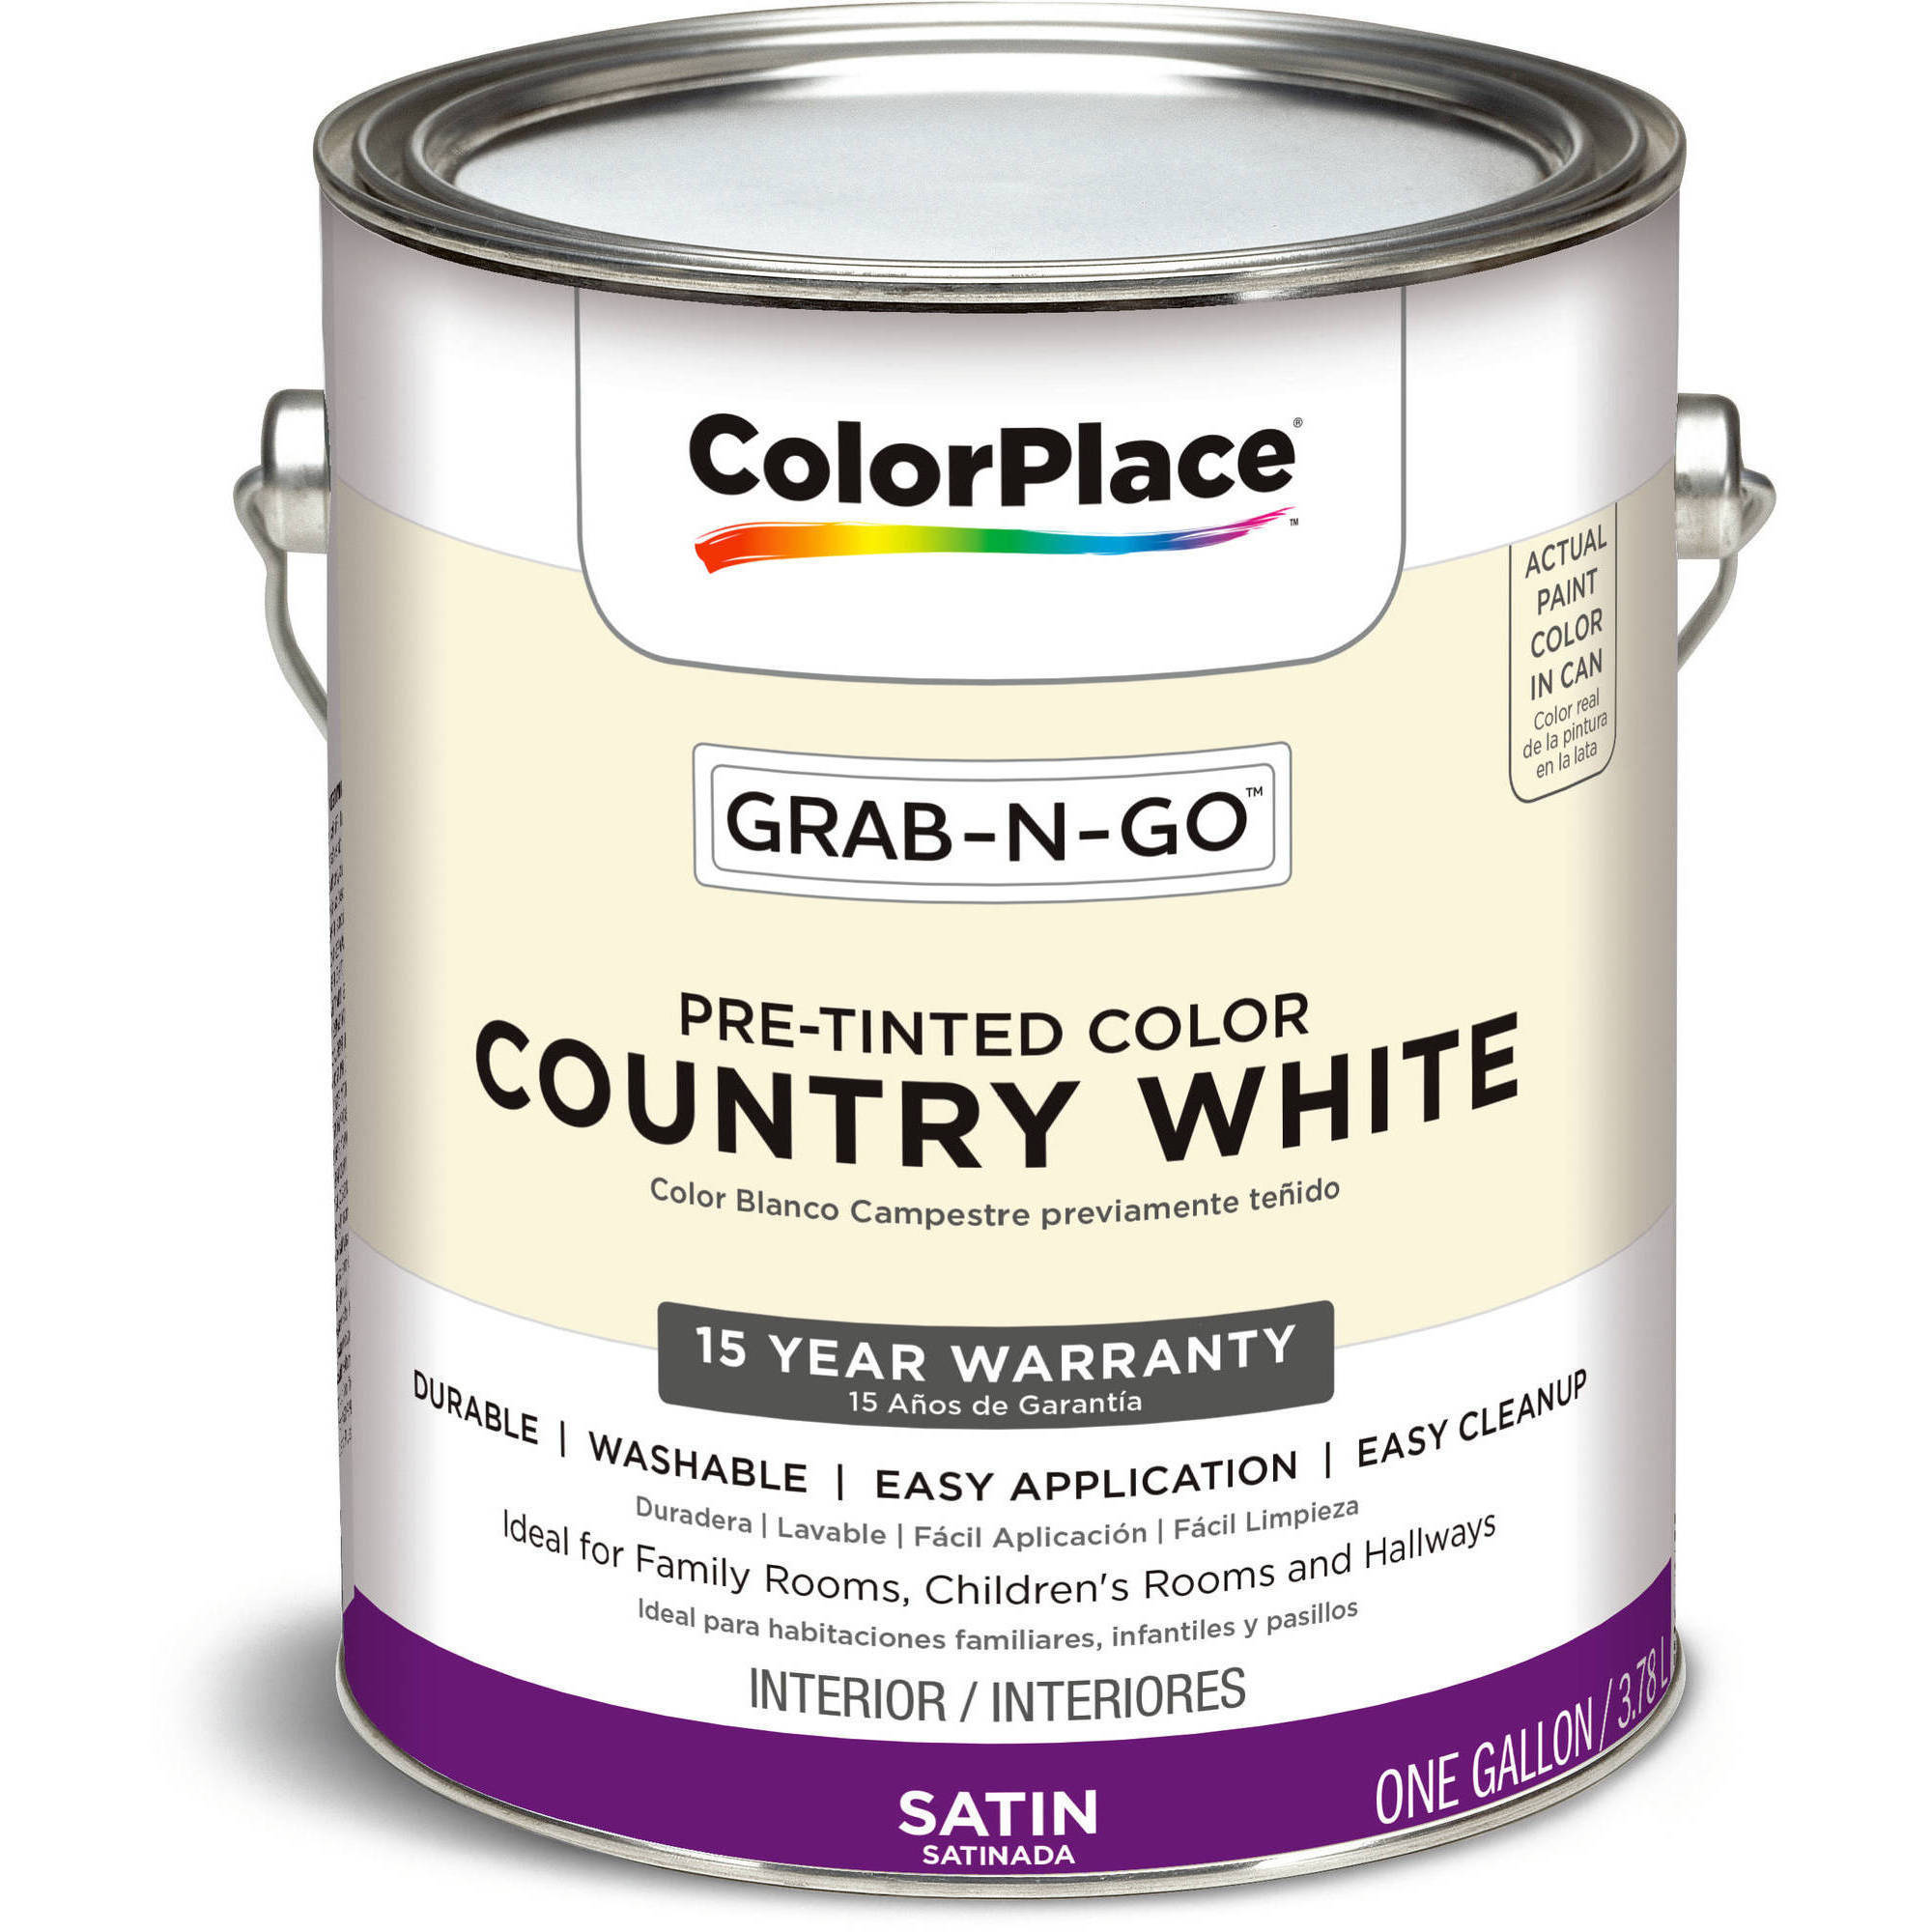 Country White, ColorPlace Grab-N-Go Interior Paint, 1 Gallon